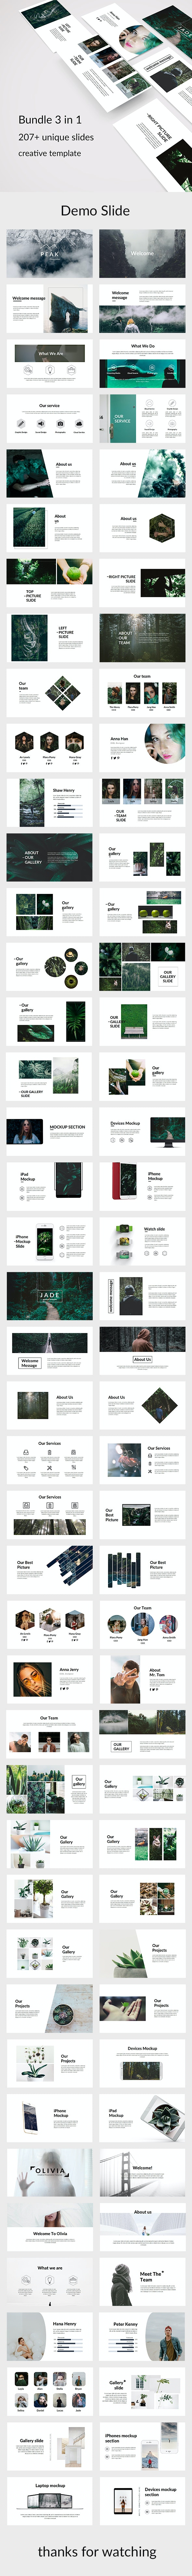 3 in 1 Premium - Marc 1 Powerpoint Template - Creative PowerPoint Templates